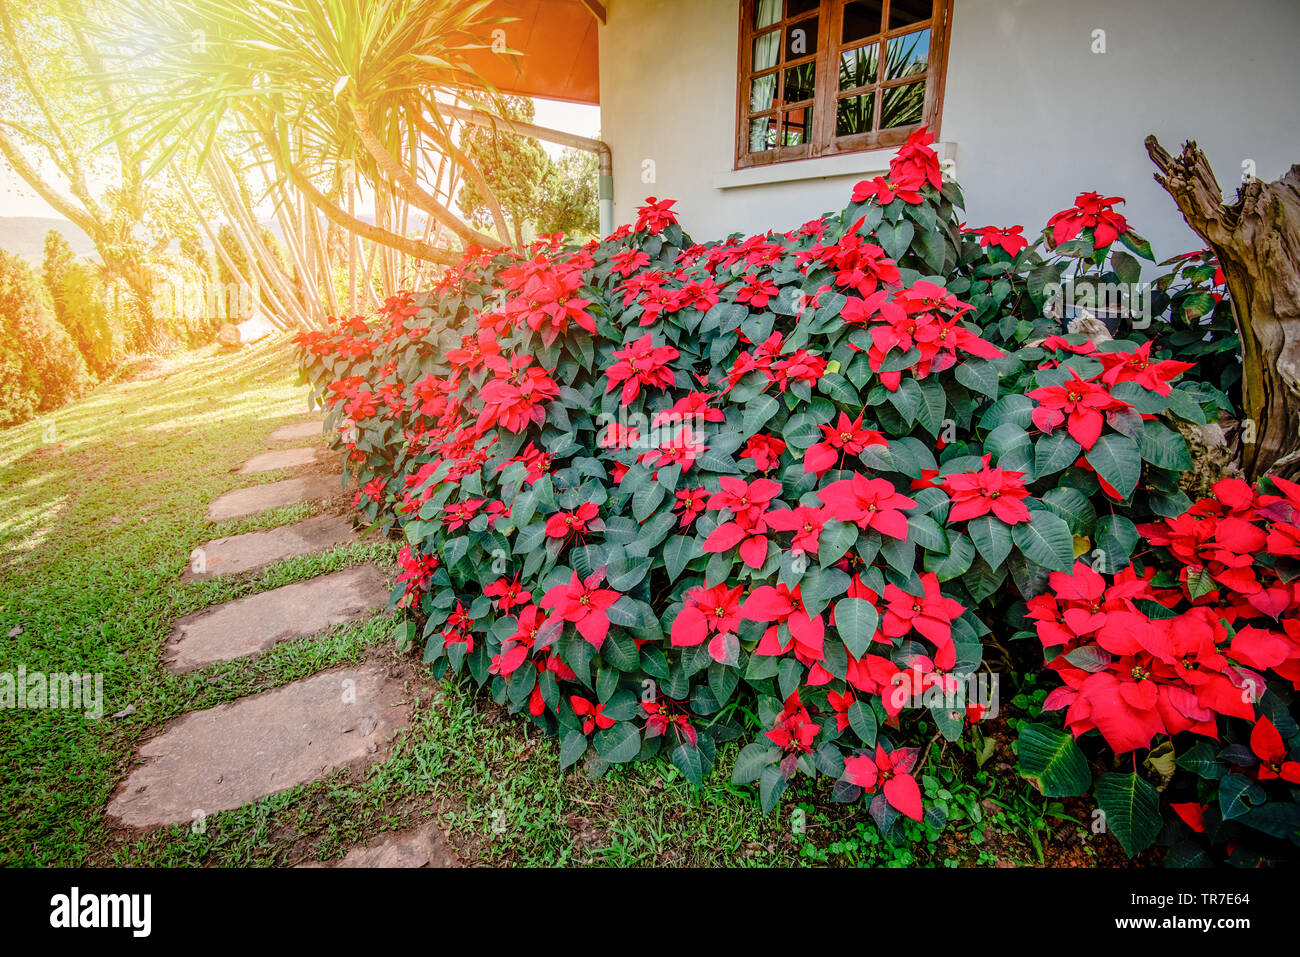 Red Poinsettia Flowers Blooming In The Garden Front Yard Or Christmas Star Flowers Plant Euphorbia Pulcherrima Stock Photo Alamy